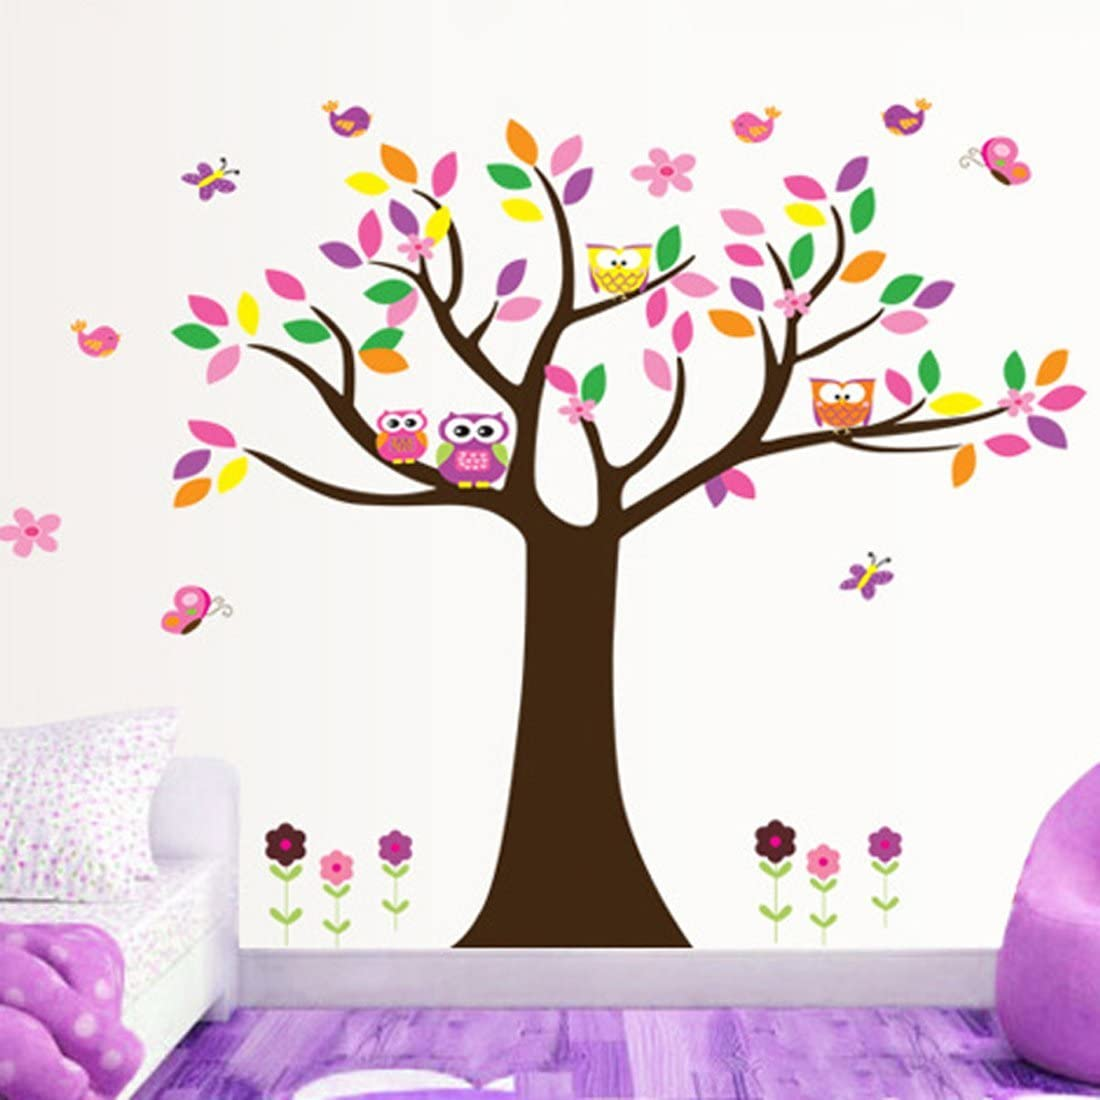 Colorful Leaves Tree Owls Butterflies Birds Wall Decal Home Sticker Paper Removable Living Dinning Room Bedroom Kitchen Art Picture Murals DIY Stick Girls Boys kids Nursery Baby Playroom Decoration